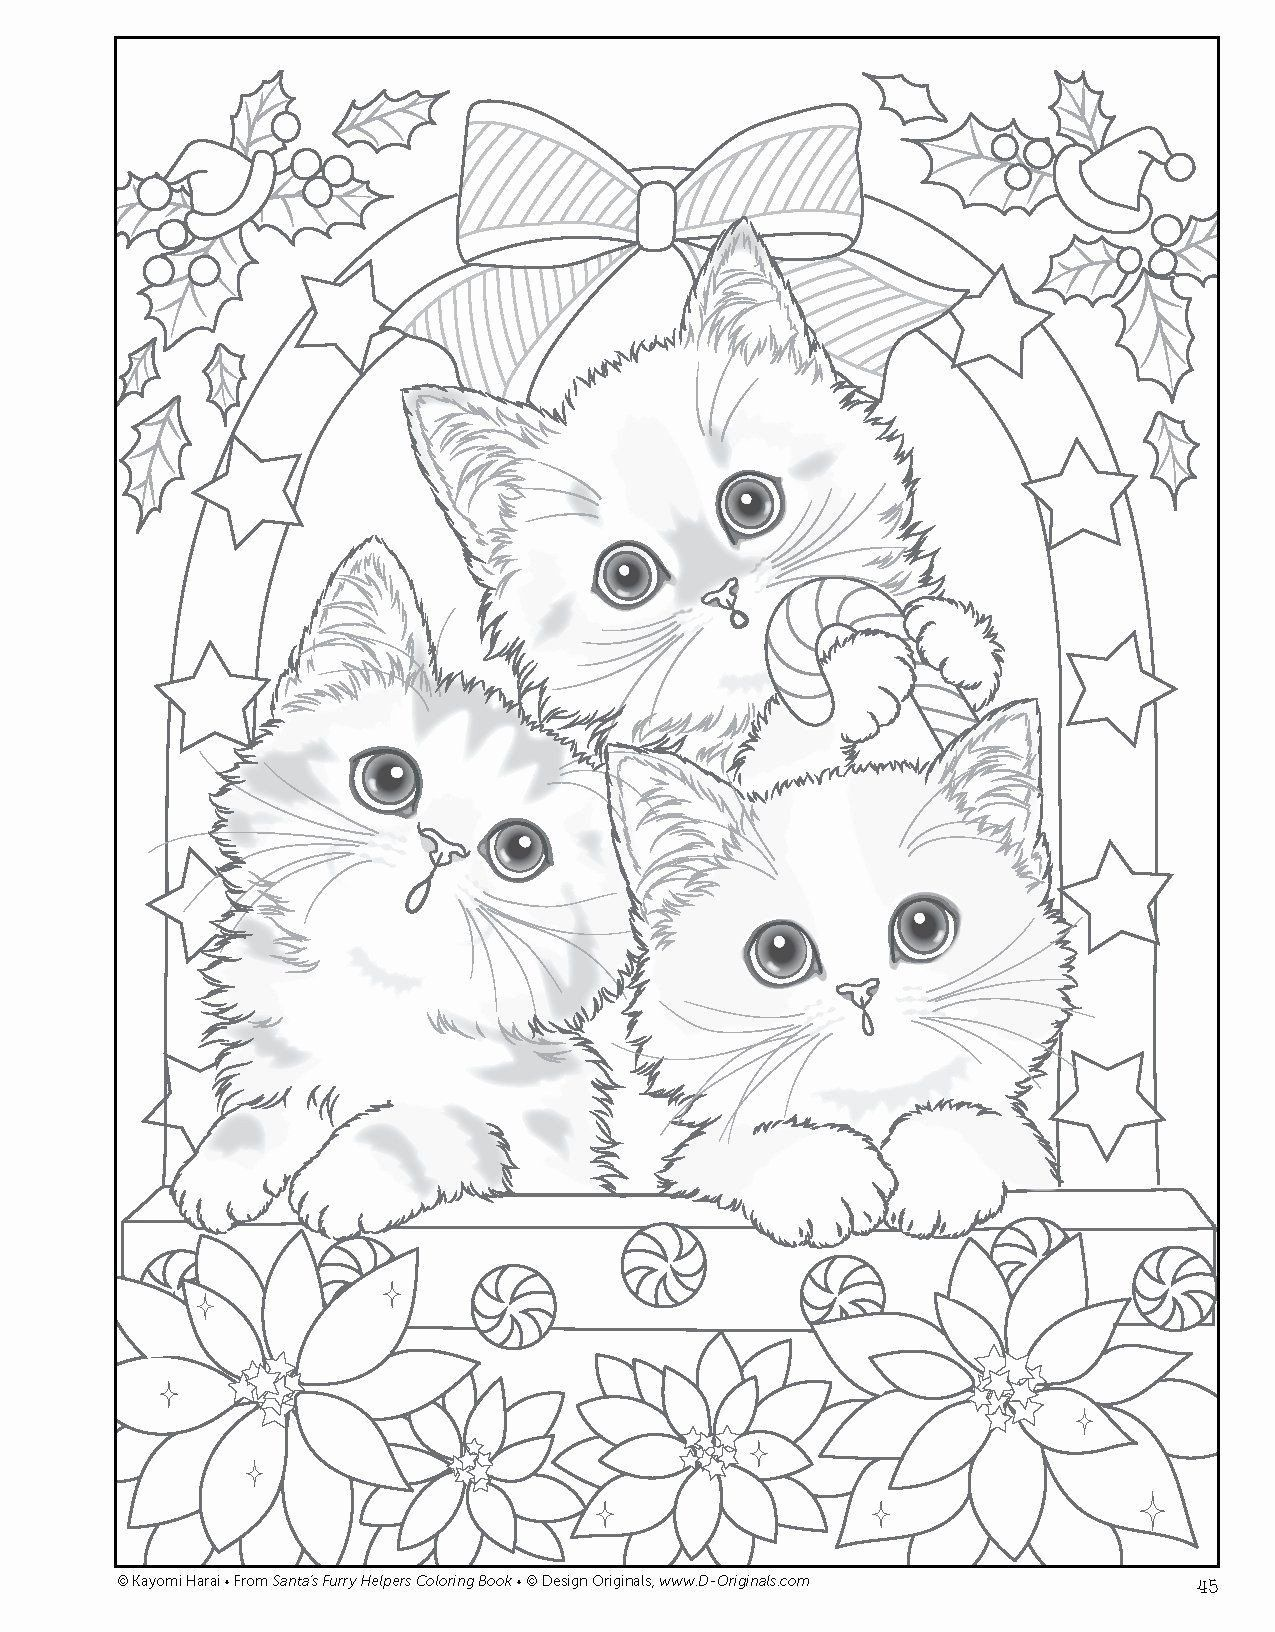 Best Photos Animals Coloring Pages Style The Attractive Matter With Regards To Coloring Is T In 2021 Christmas Coloring Pages Animal Coloring Pages Cute Coloring Pages